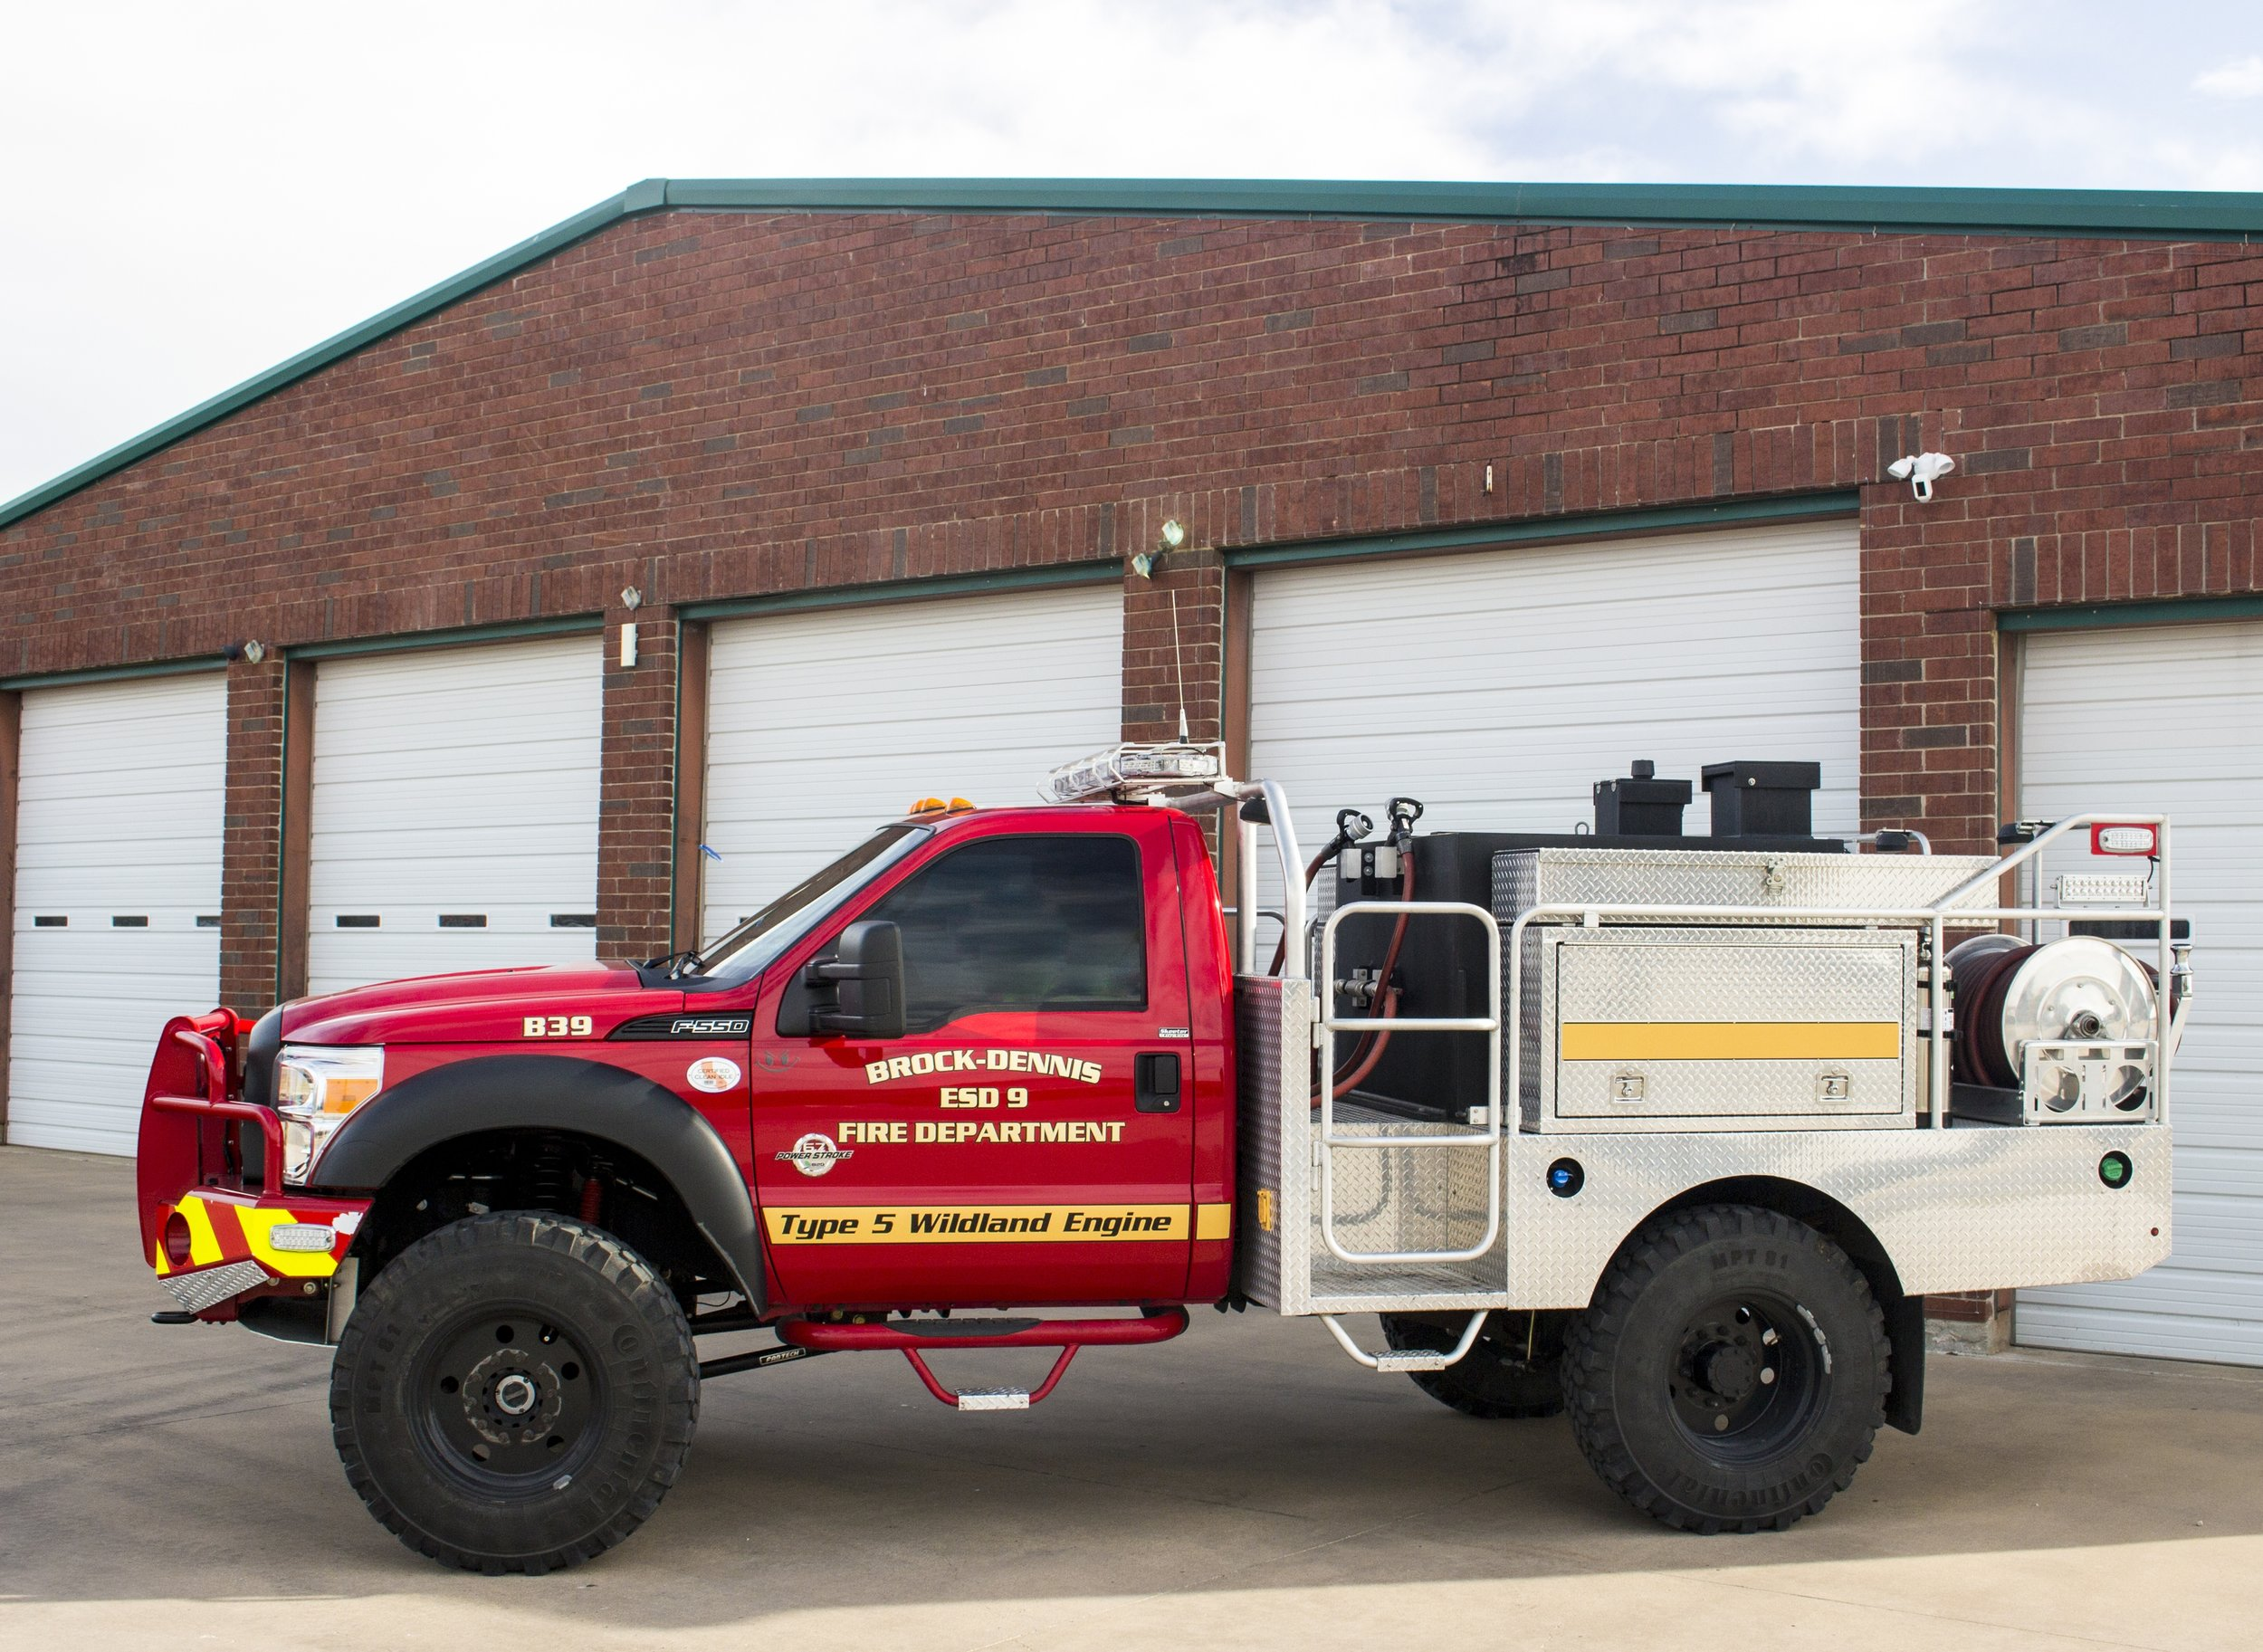 B39 - This truck is a 2012 Skeeter built by Sidioons Martin on a Ford f550 chassis. This truck carries up to 400 gallons of water and foam. It's primary use is for brush fires found in rough terrain. This was one of the first trucks purchased by Parker County ESD #9 and replaced its1980's model predecessor